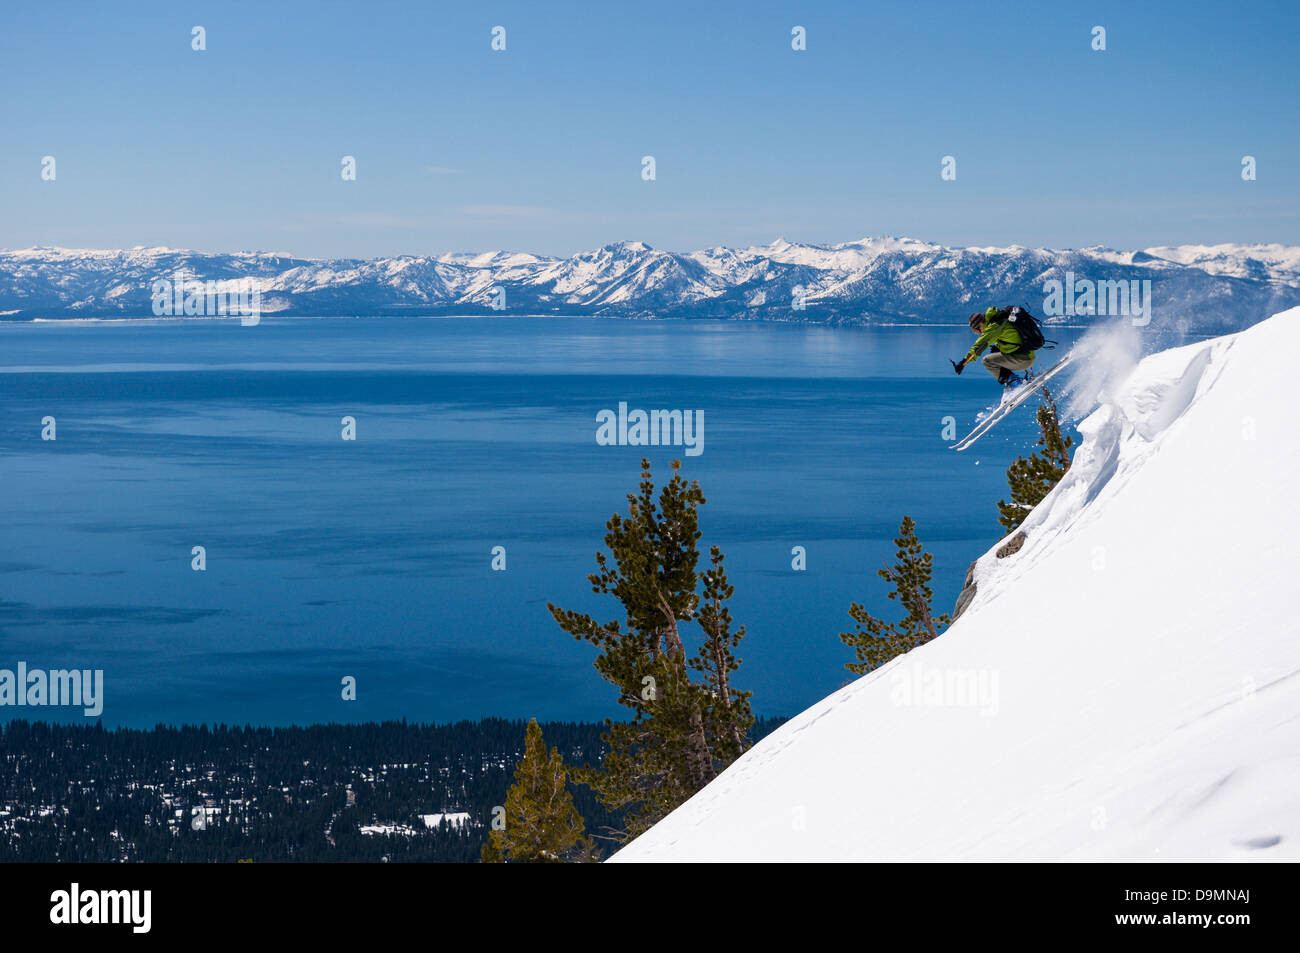 Skier jumping off the top of Incline Peak with Lake Tahoe in the background near the Mt. Rose Summit in powder snow. Stock Photo